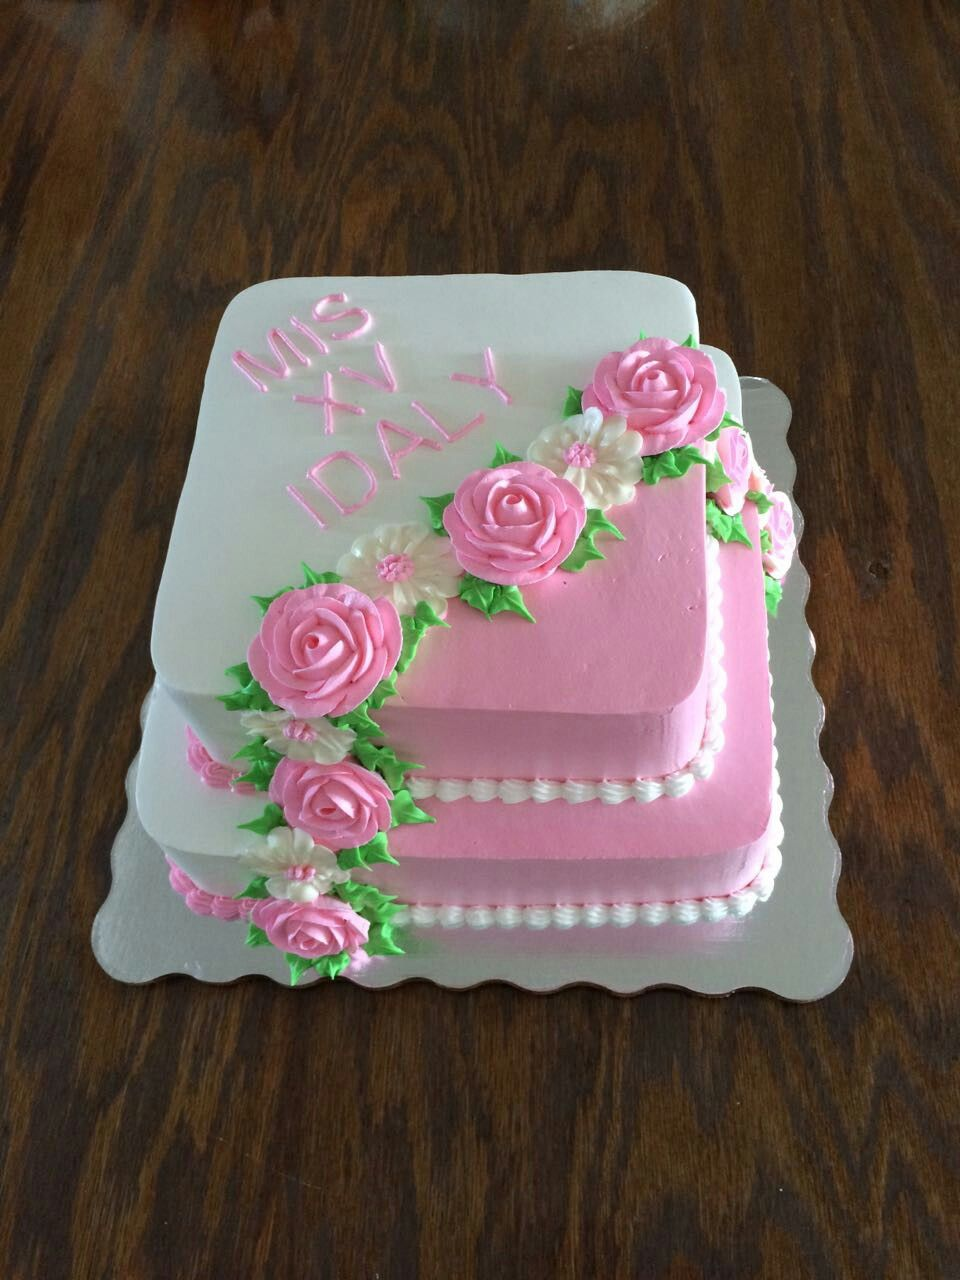 Pin by mary biggs on cakes pinterest layering cake and birthday